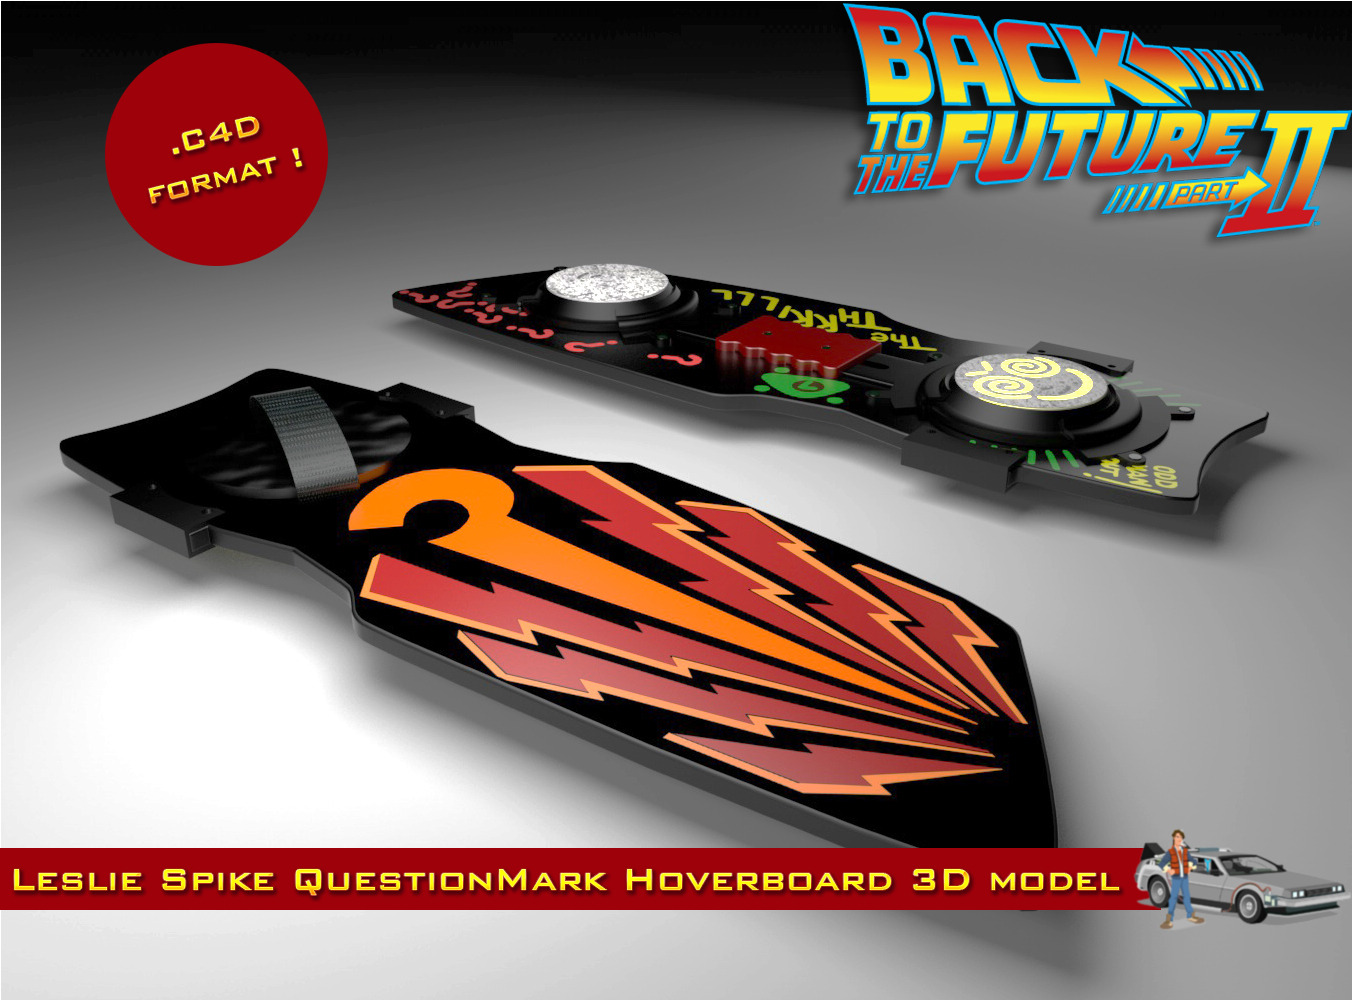 Water Hoverboard For Sale >> Leslie Spike O'Malley's QuestionMark Hoverboard by MARCEL_studios | 3DOcean